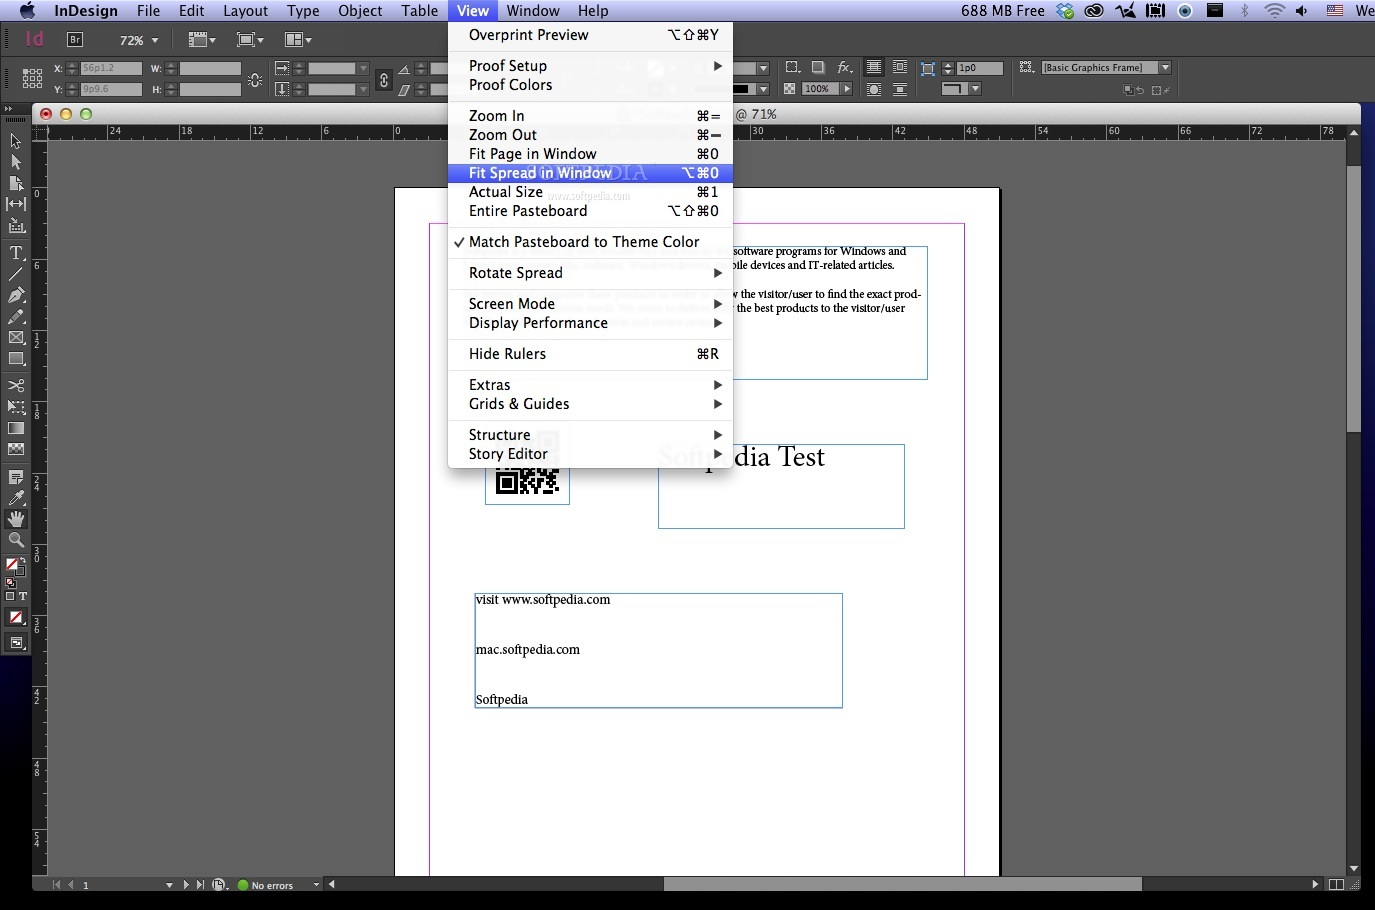 adobe indesign trial download